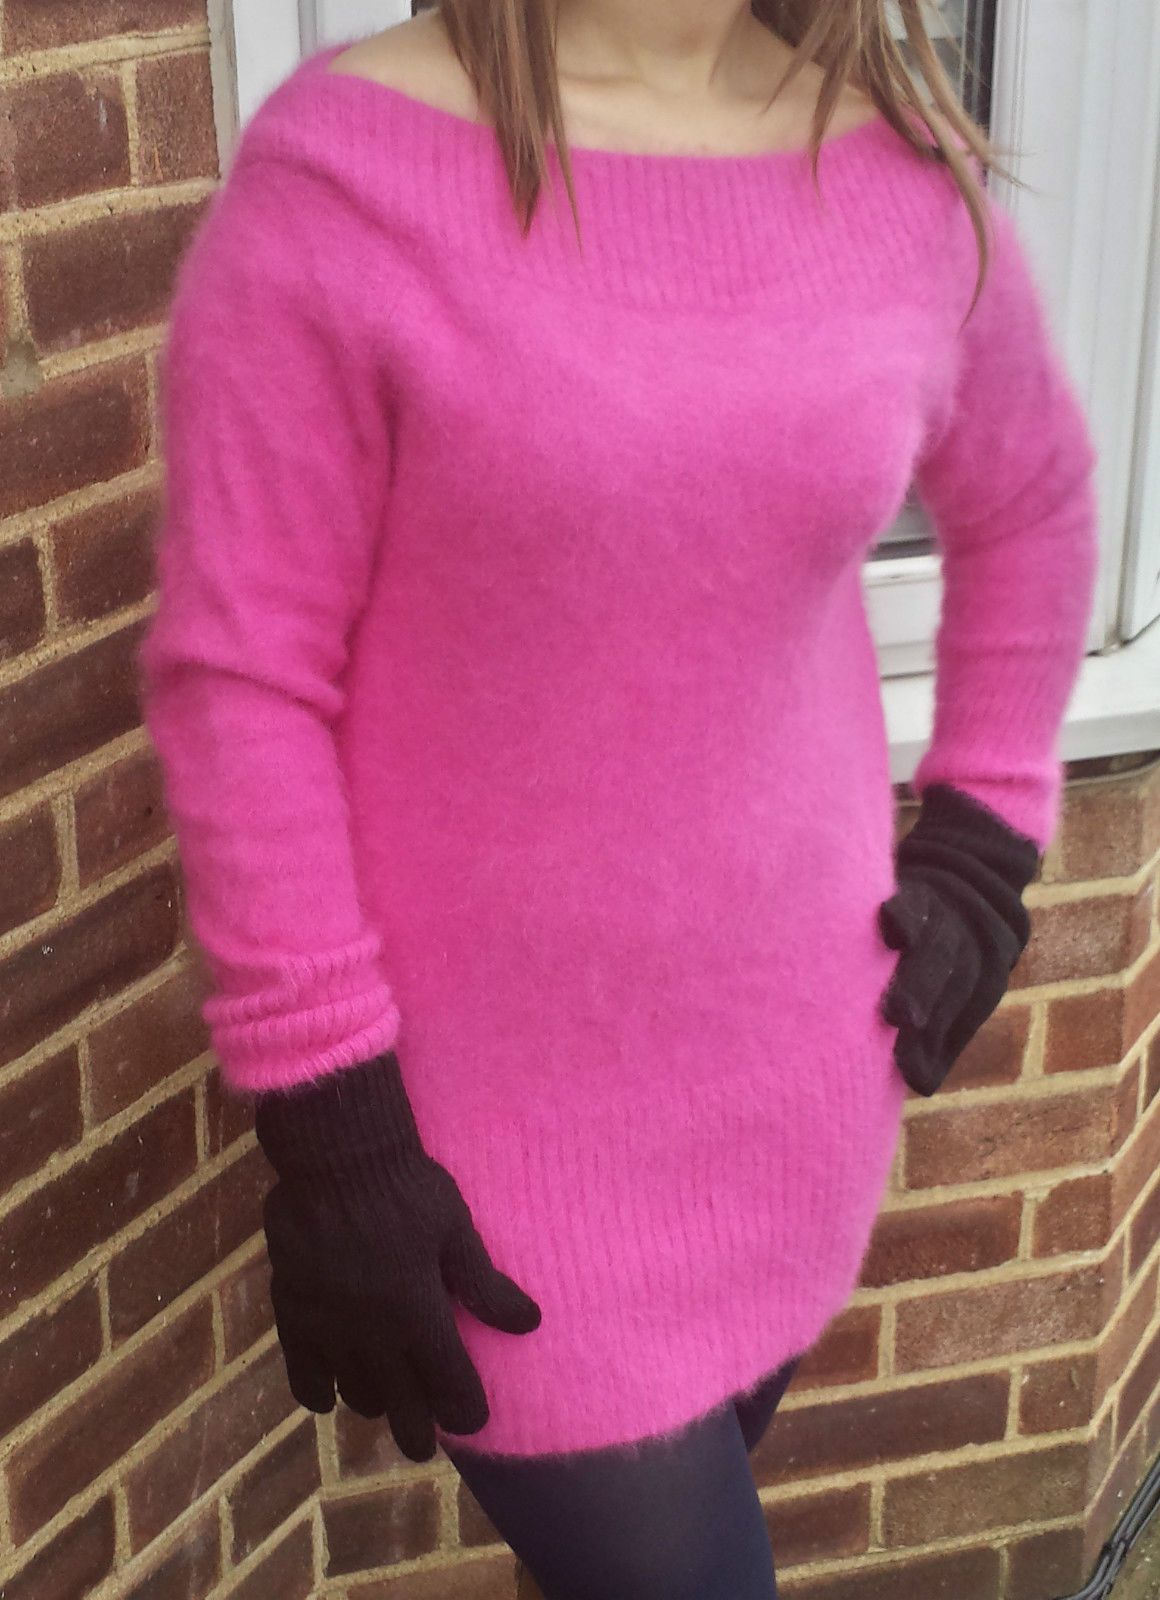 Stunning Furry Fluffy Fuzzy Hot Pink 79 Angora Sweater Jumper ...